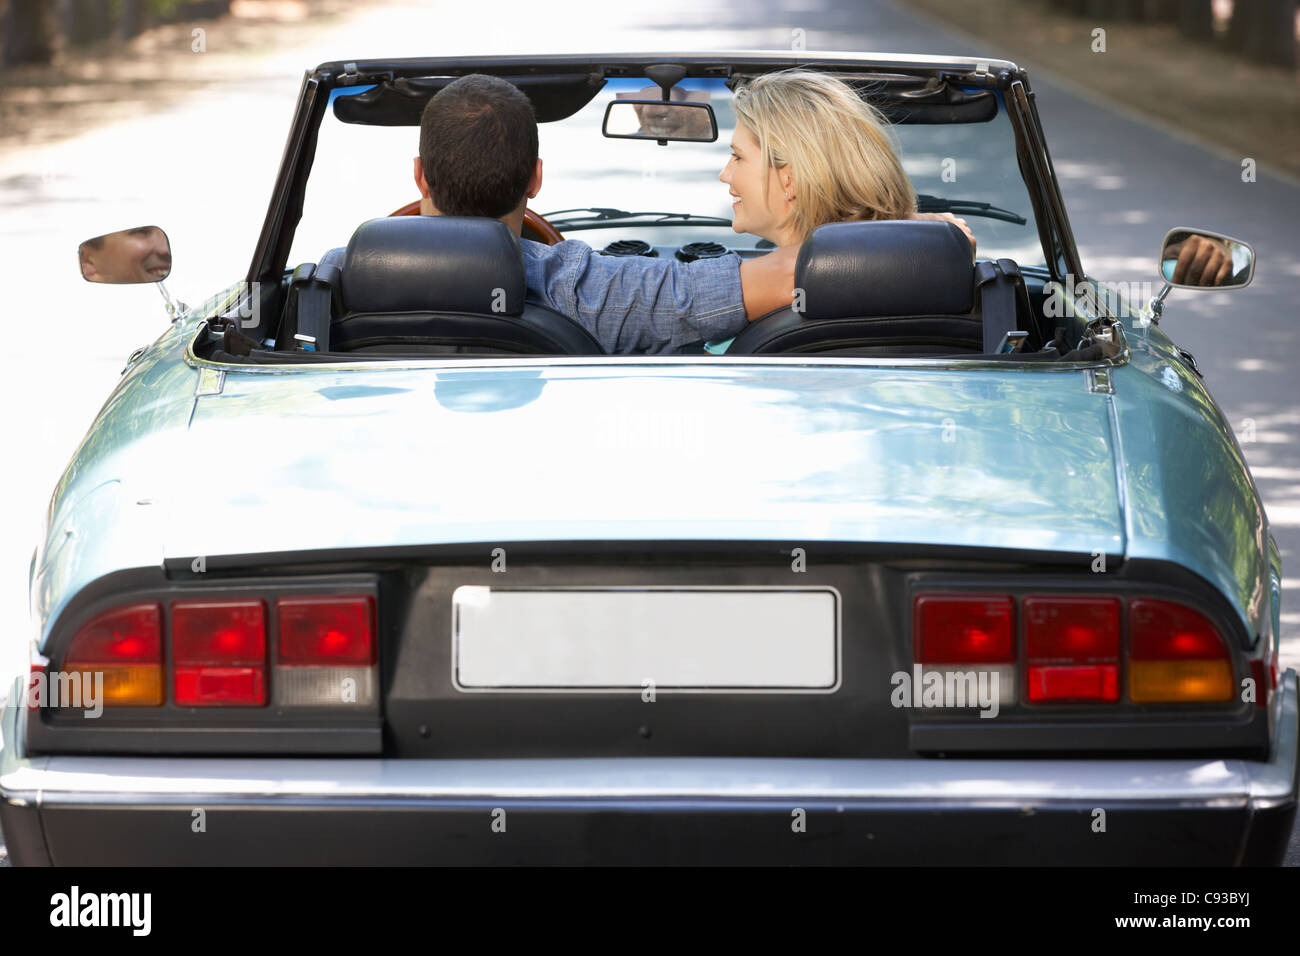 Couple in sports car - Stock Image